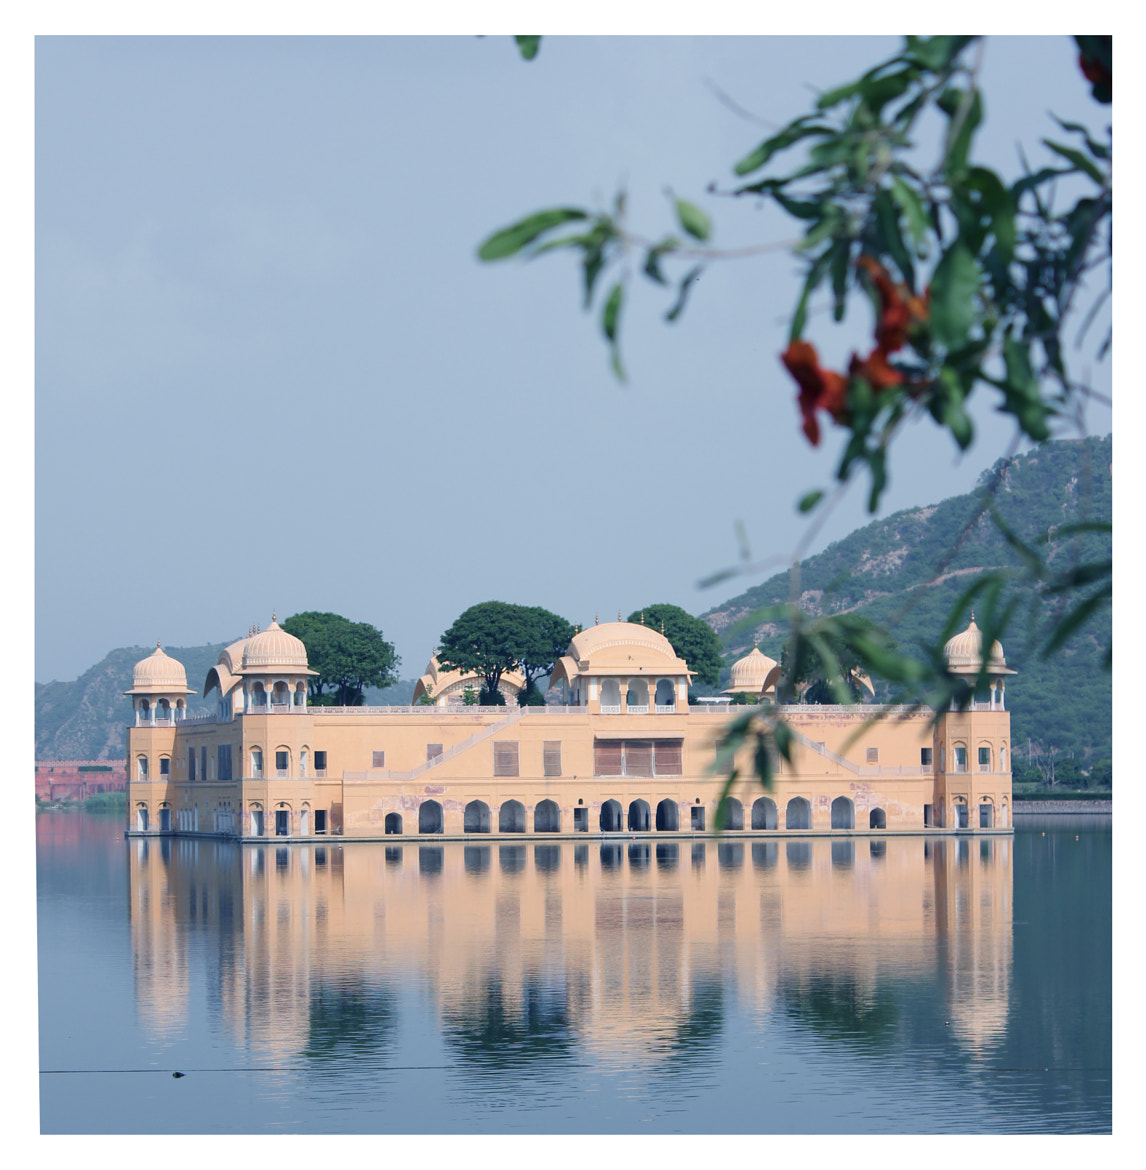 Photograph Jal Mahal by Yashovardhan Sodhani on 500px